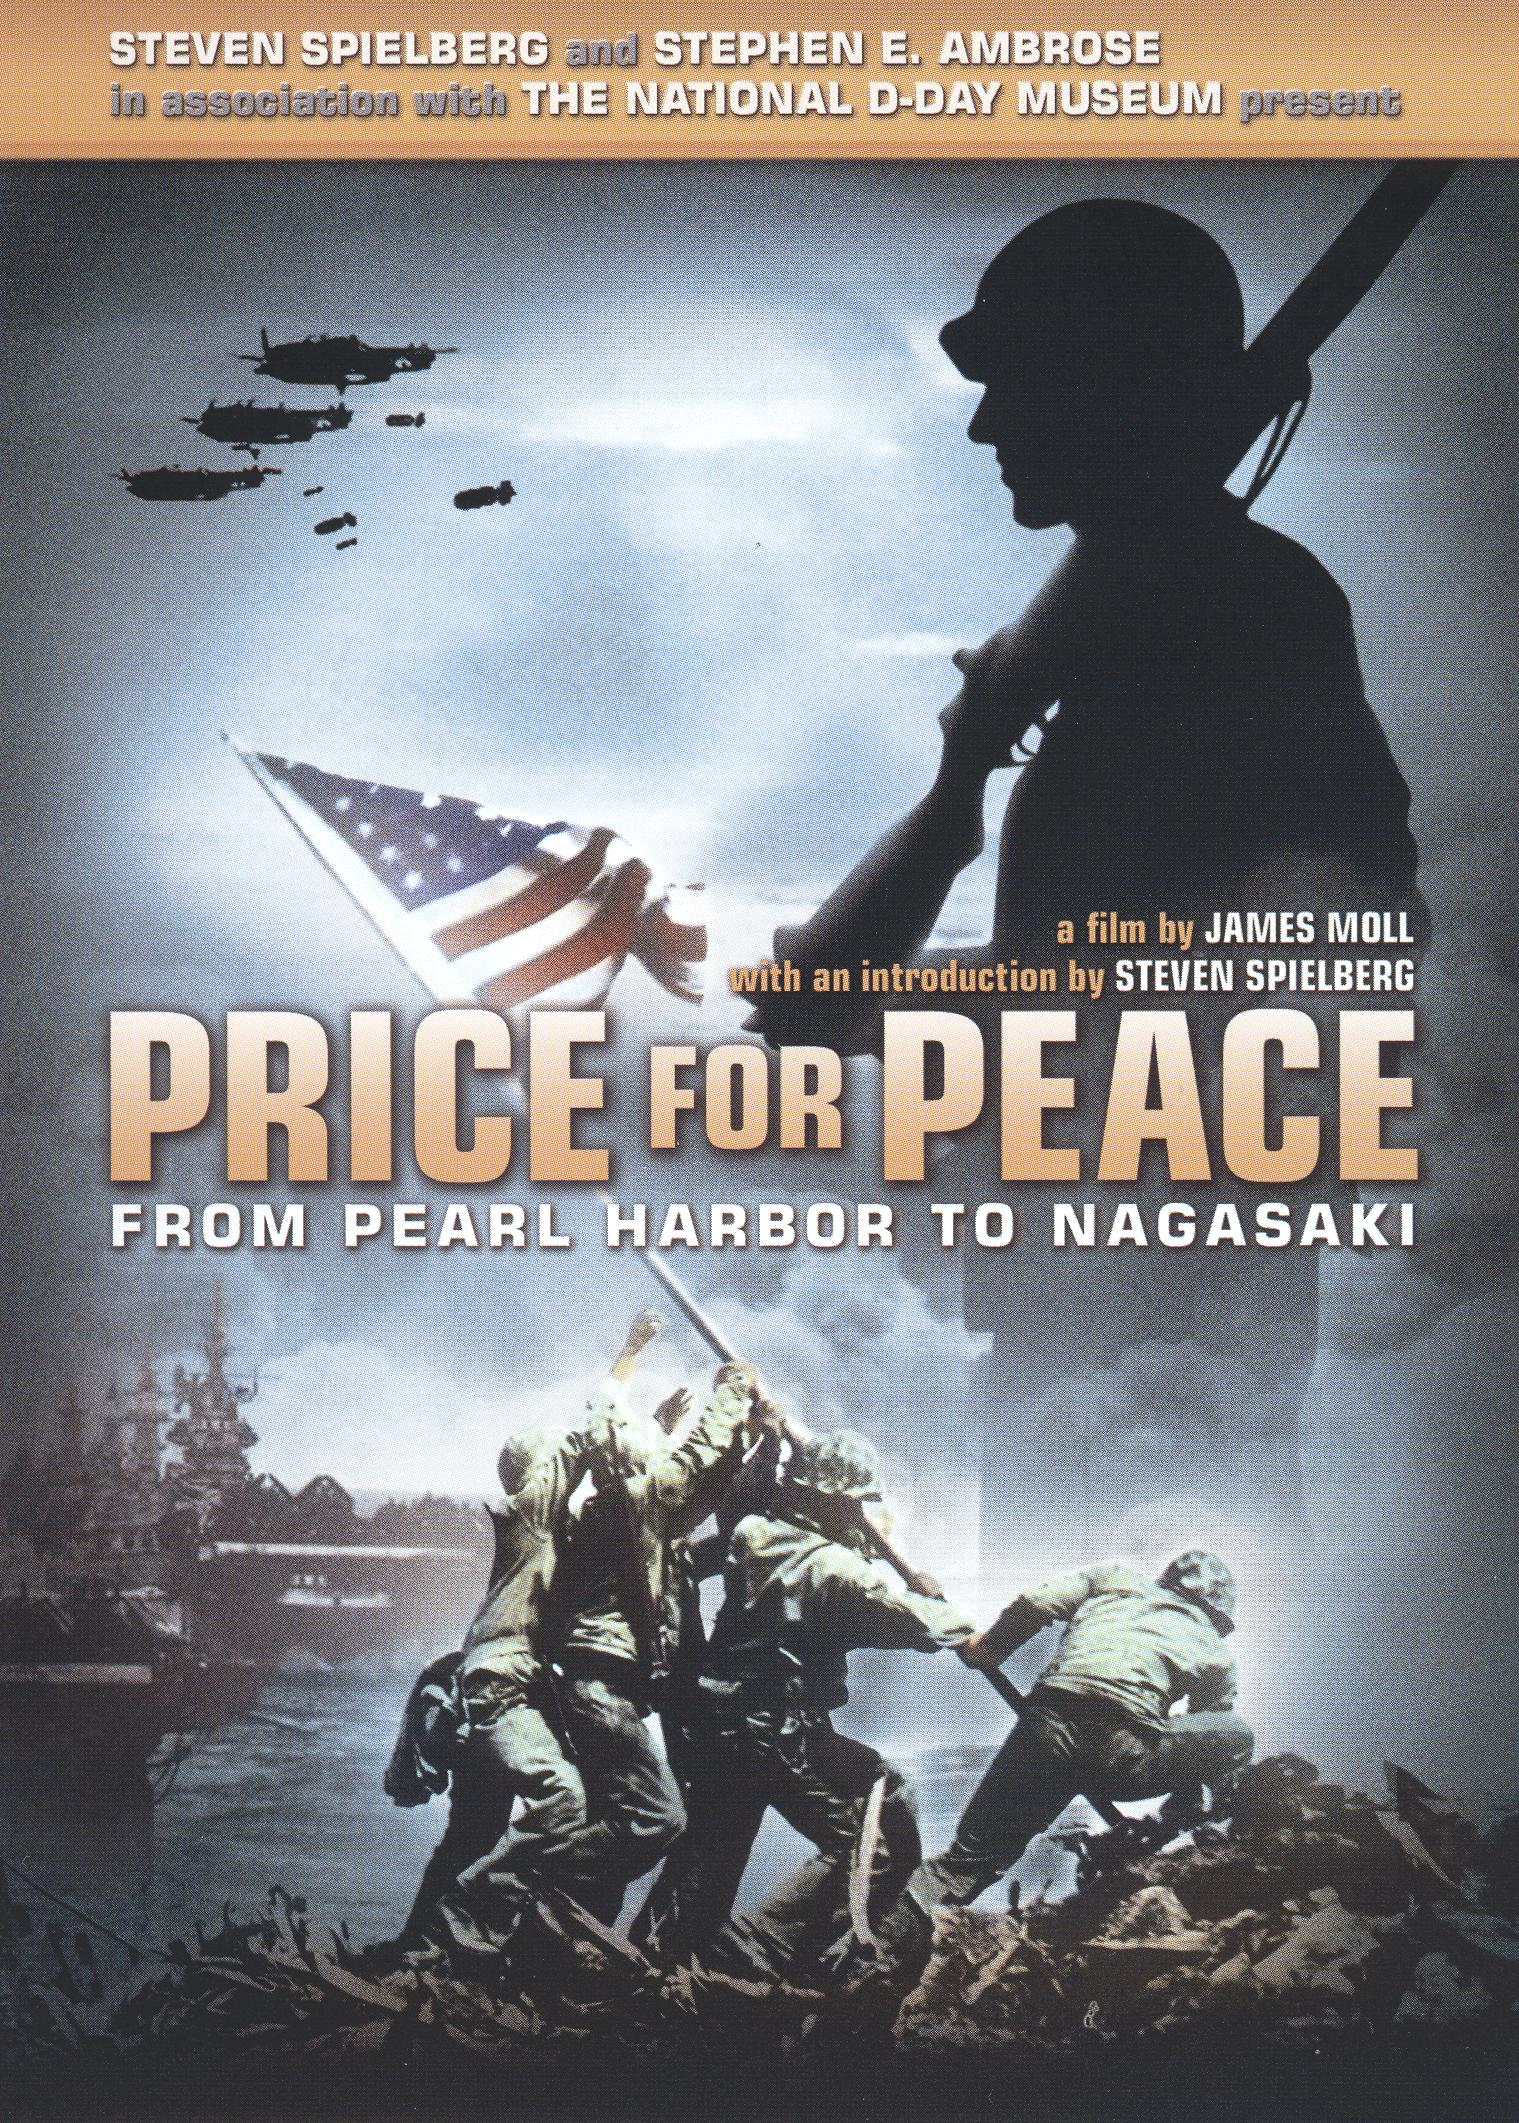 Price for Peace: From Pearl Harbor to Nagasaki